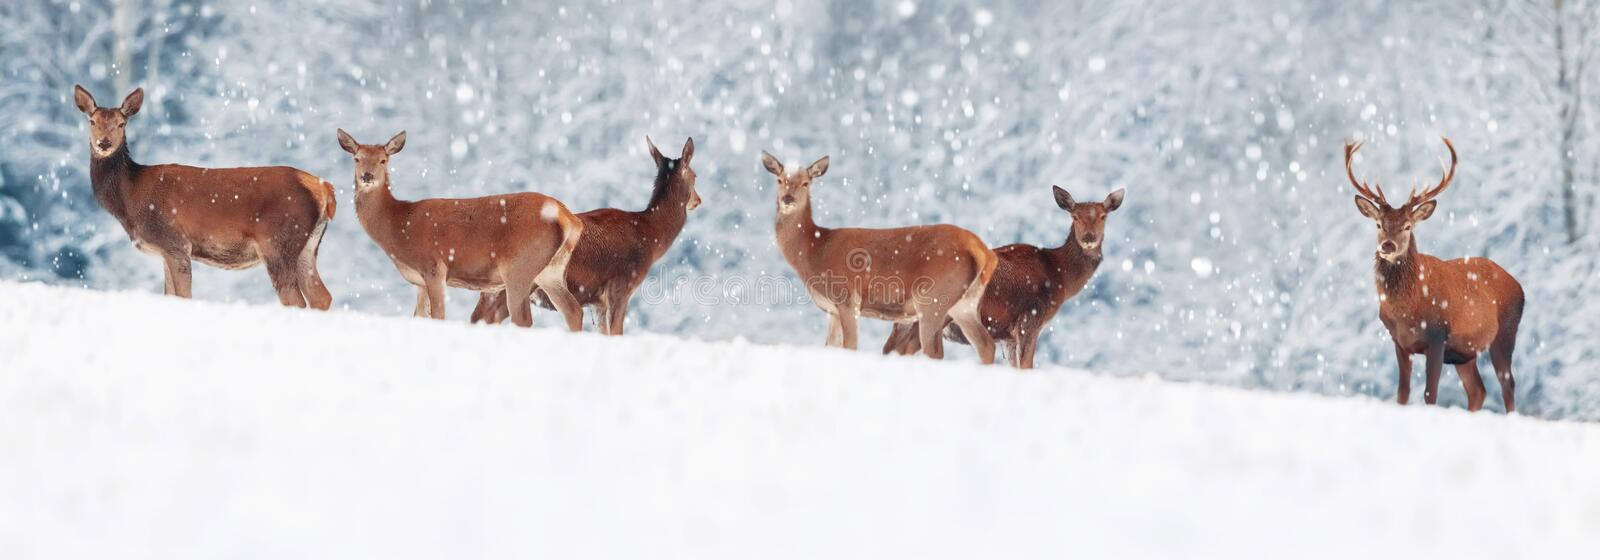 A group of beautiful male and female deer in the snowy white forest. Noble deer Cervus elaphus. Artistic Christmas winter image royalty free stock images